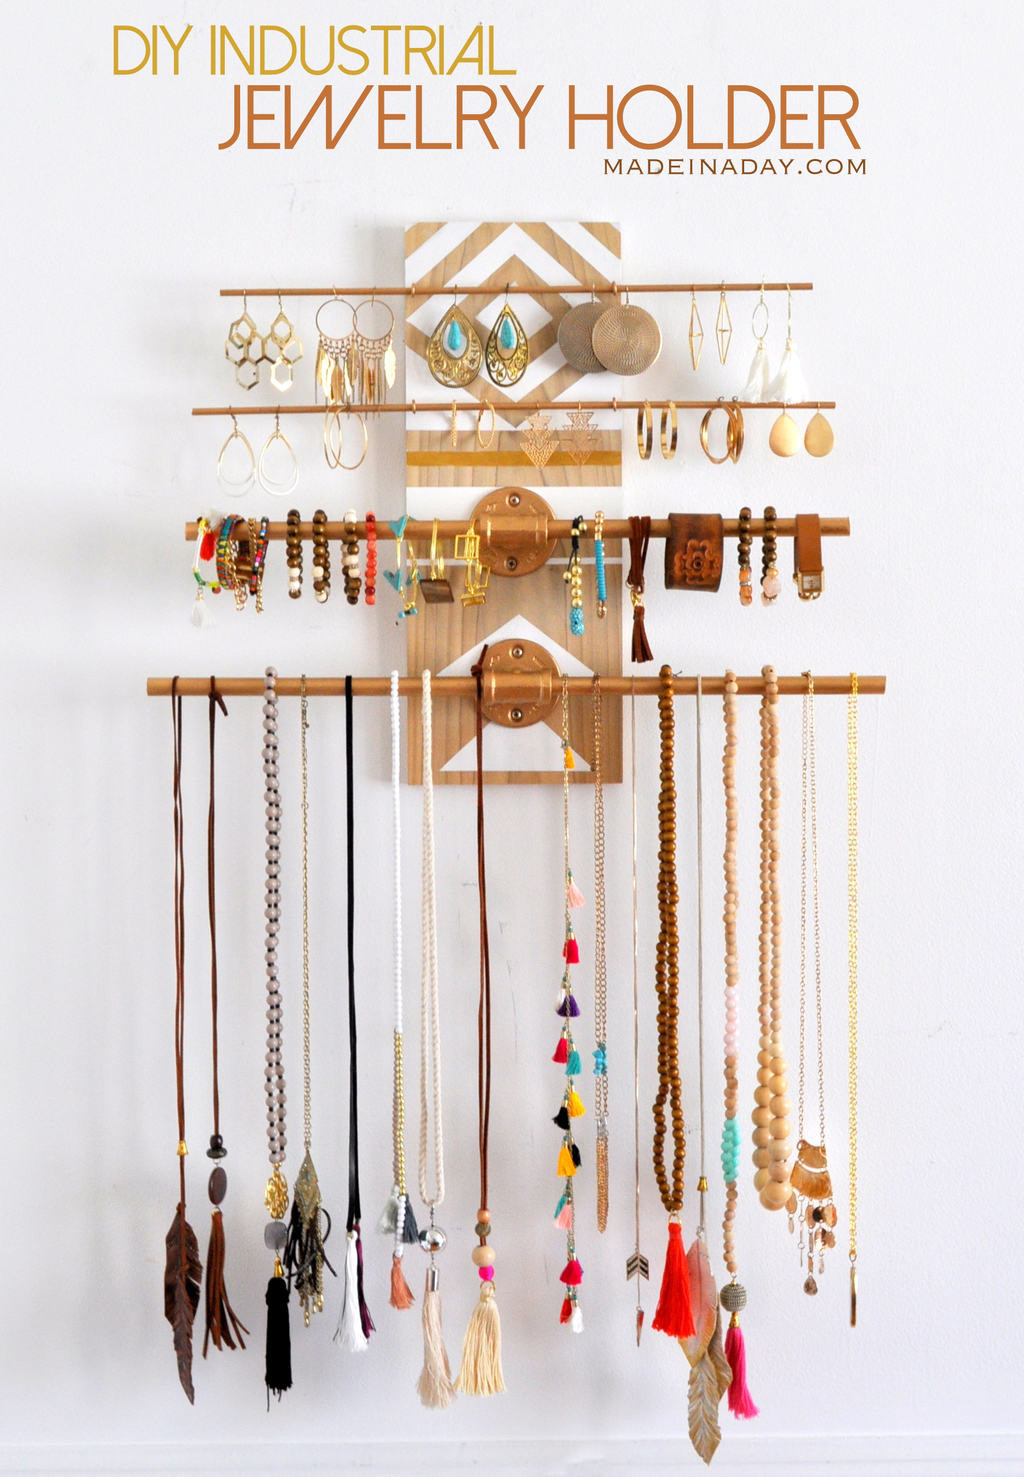 Best ideas about DIY Jewelry Rack . Save or Pin DIY Geometric Industrial Wall Jewelry Organizer Now.